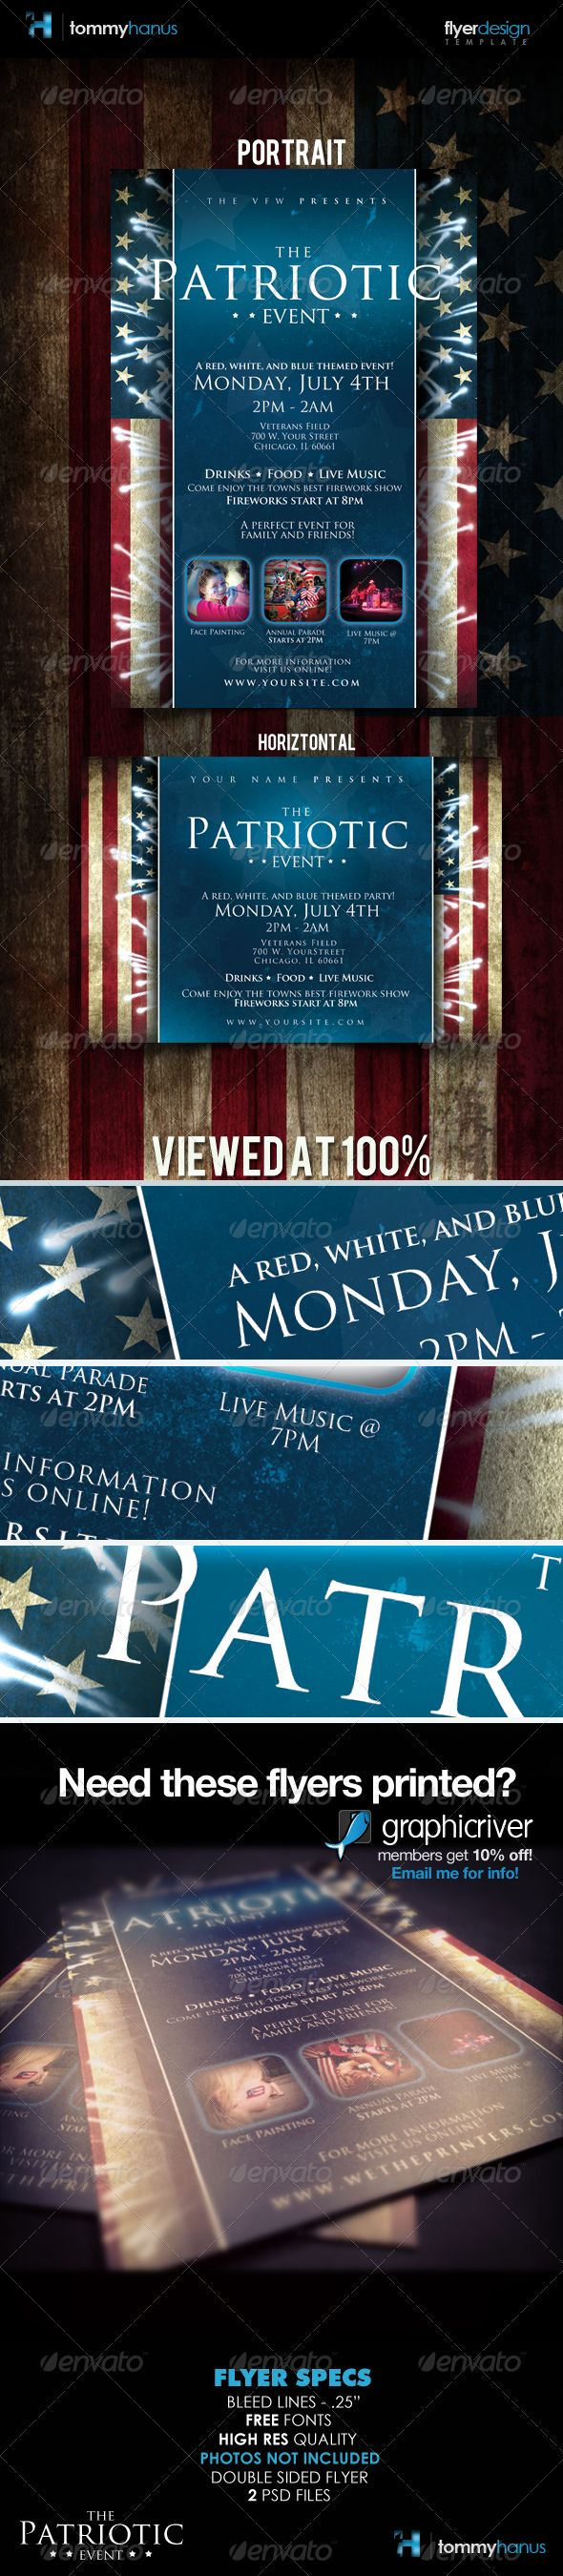 best images about flyer ideas templates events patriotic 4th of flyer template